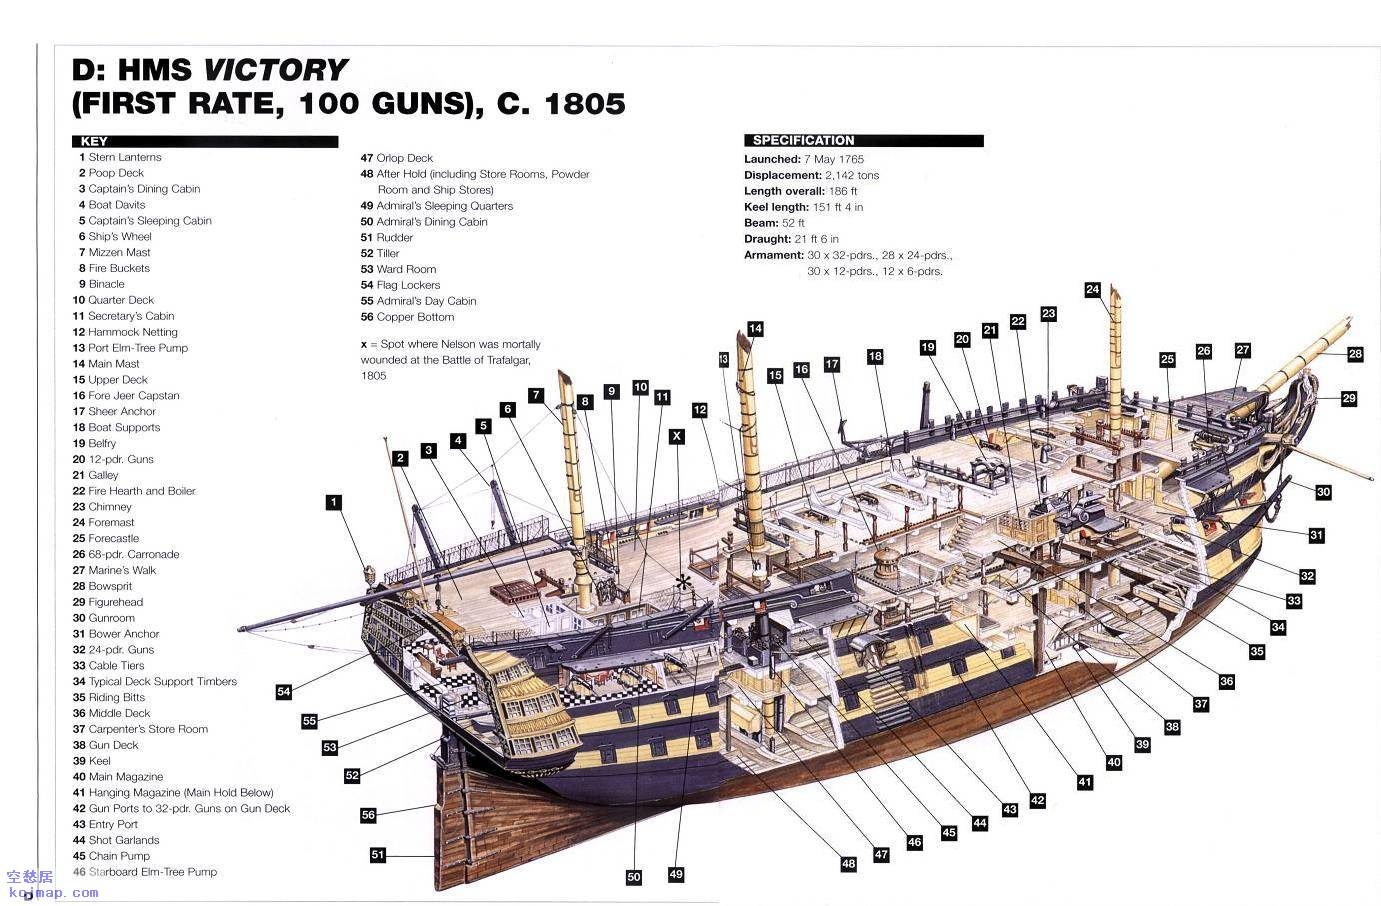 sailing ship sail diagram marley electric baseboard heater wiring ana victoria 39s hms victory in world tradewinds yacht club